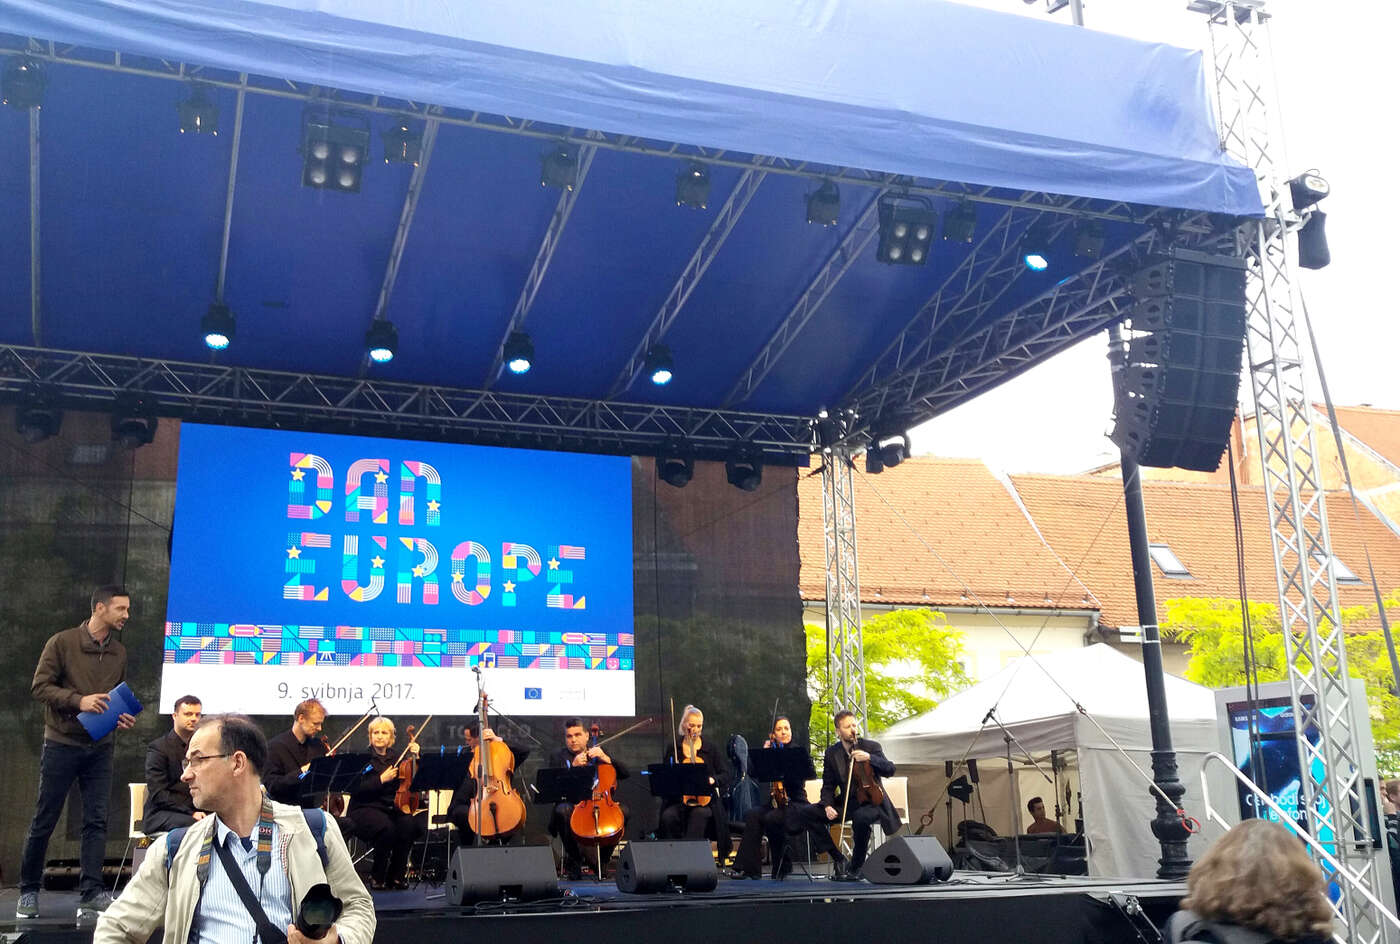 Europe Day 2017 in Zagreb